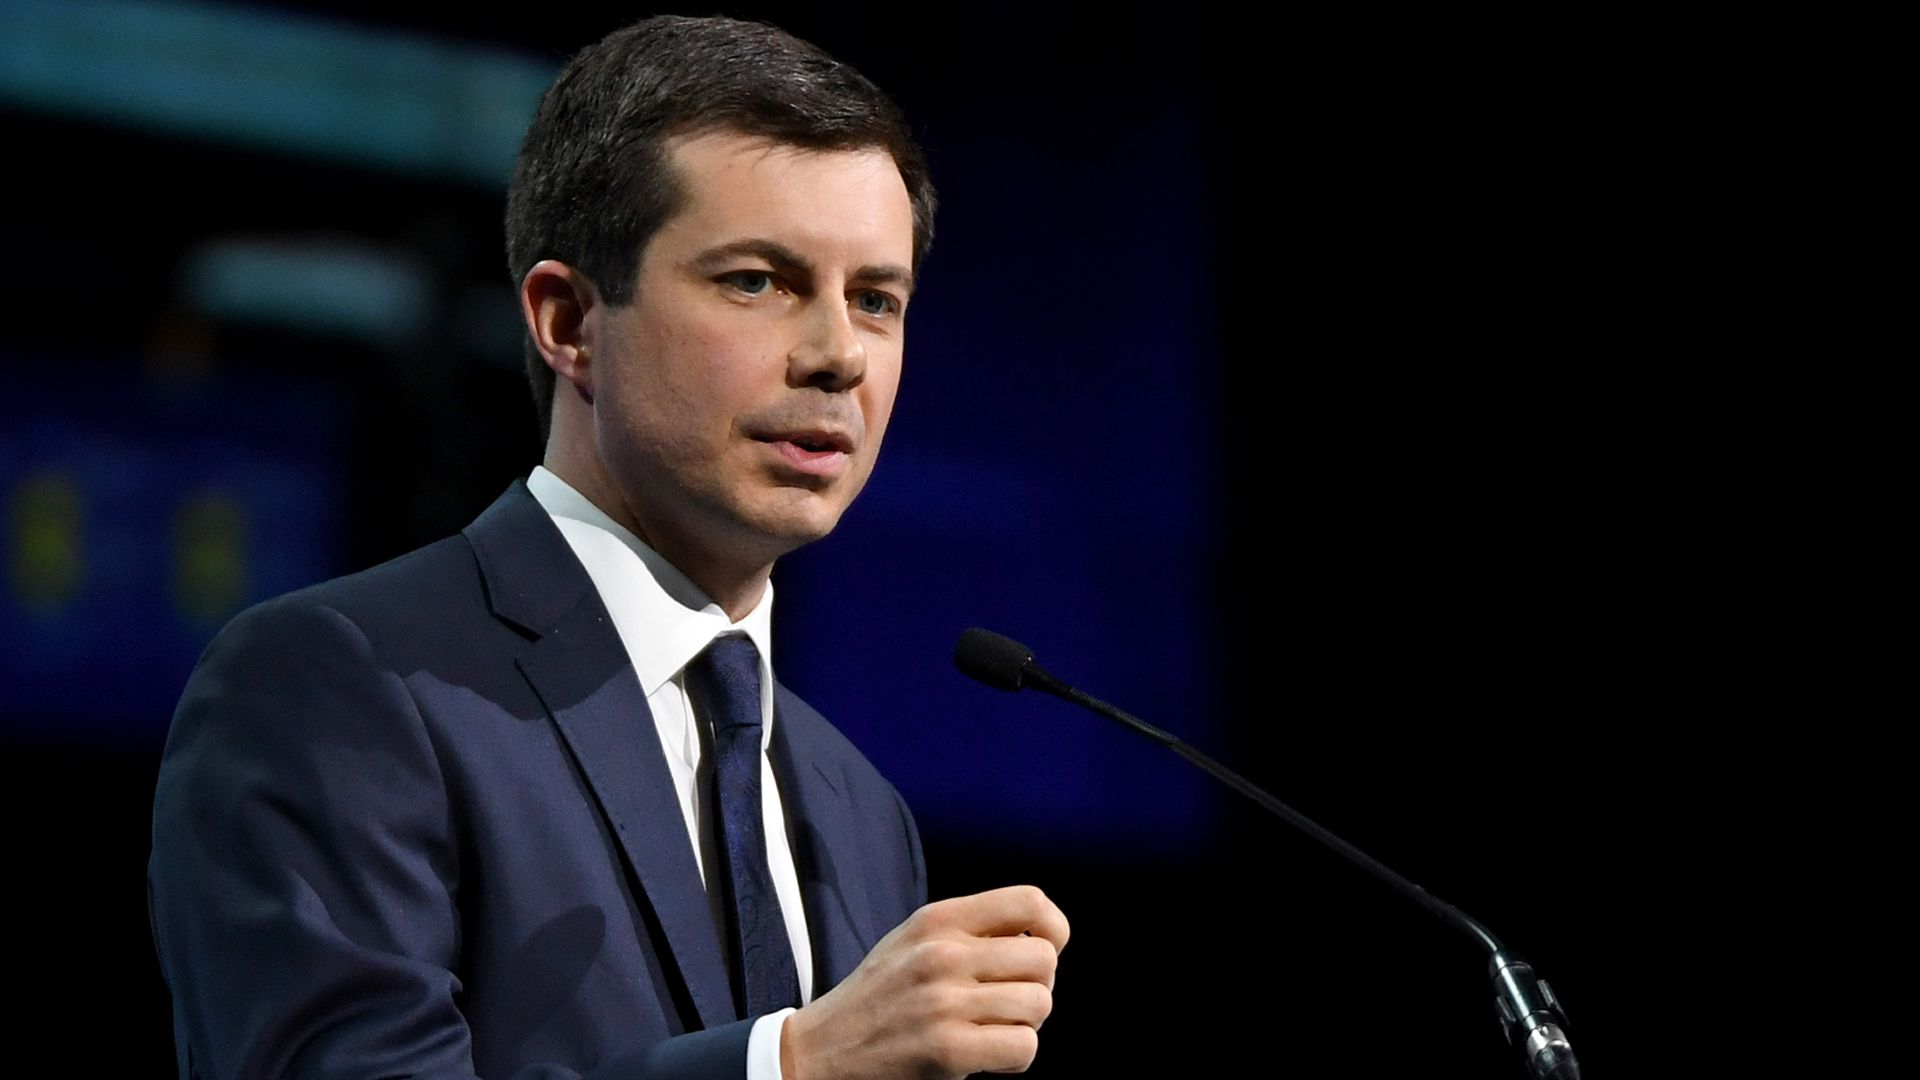 Pete Buttigieg gestures during a speech.